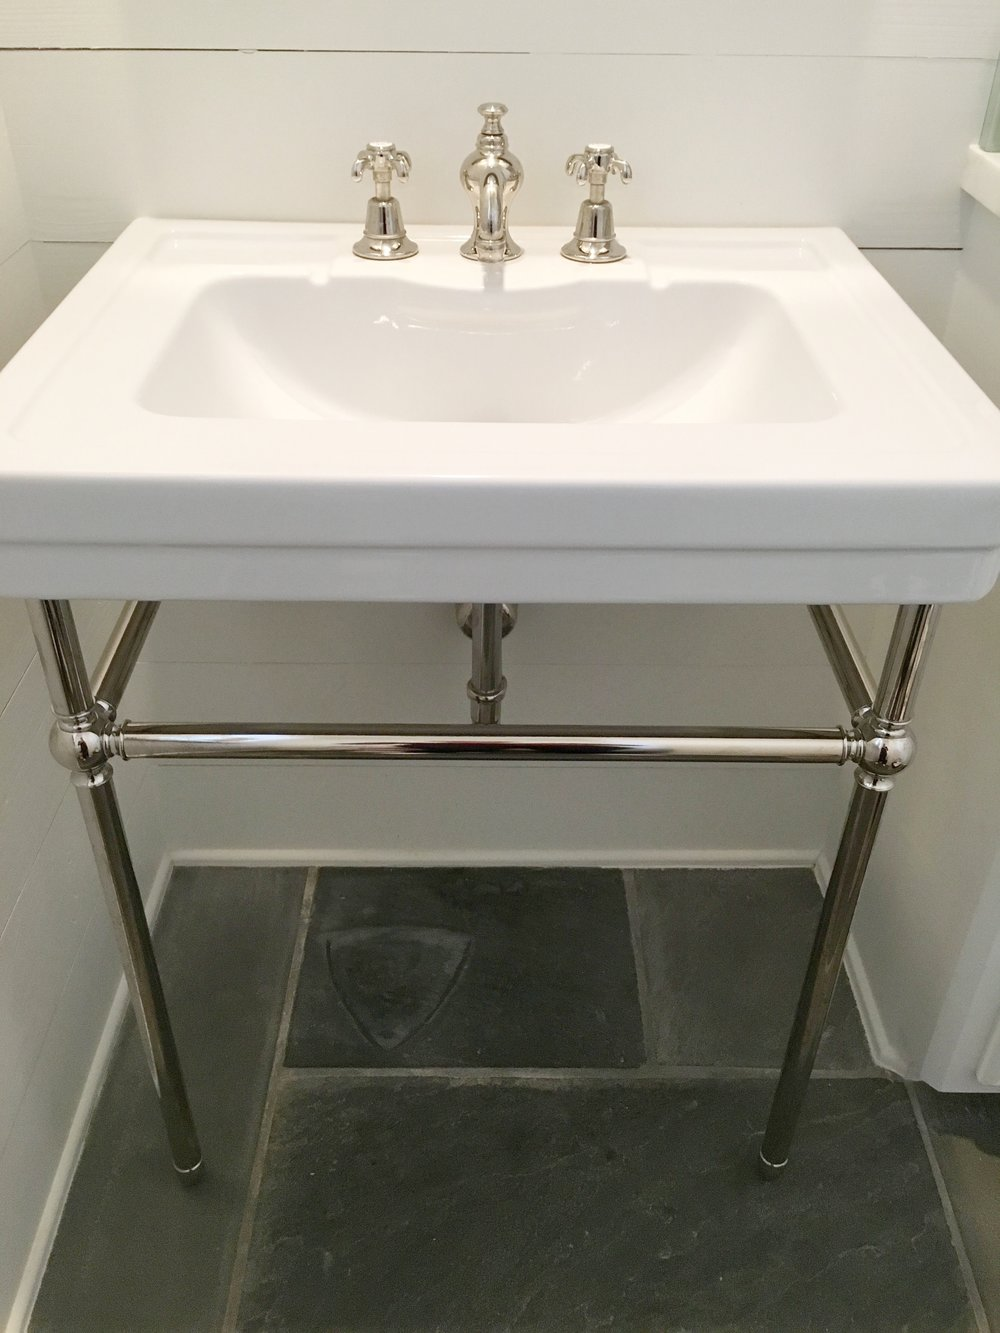 Fixturefriday Console Sink Strutton Plumbing Company